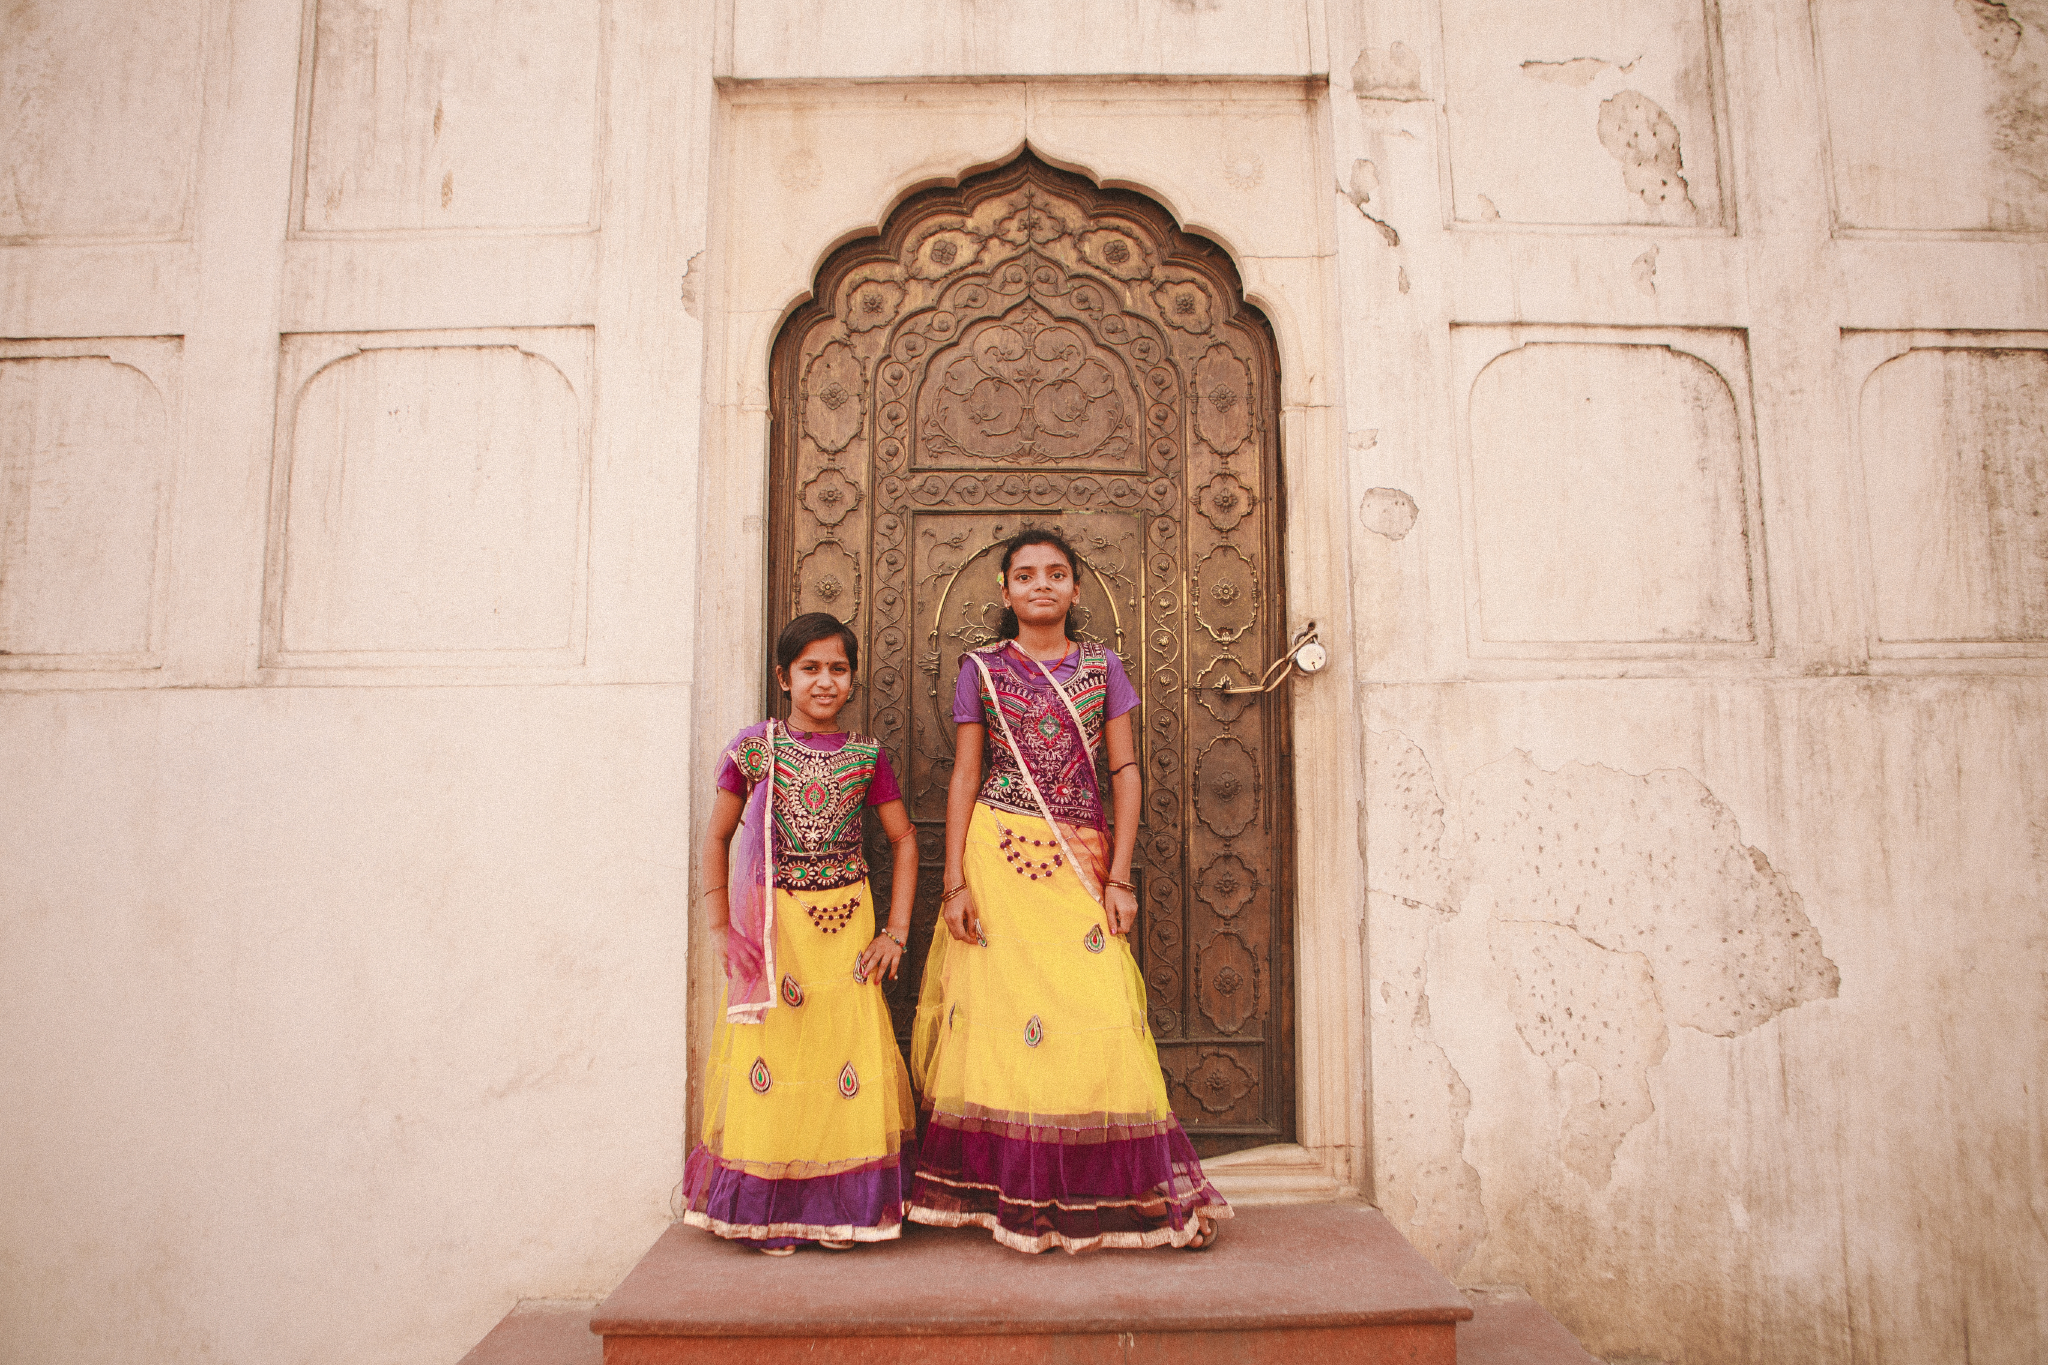 san diego wedding   photographer | indian girls wearing traditional outfit standing in front of   door